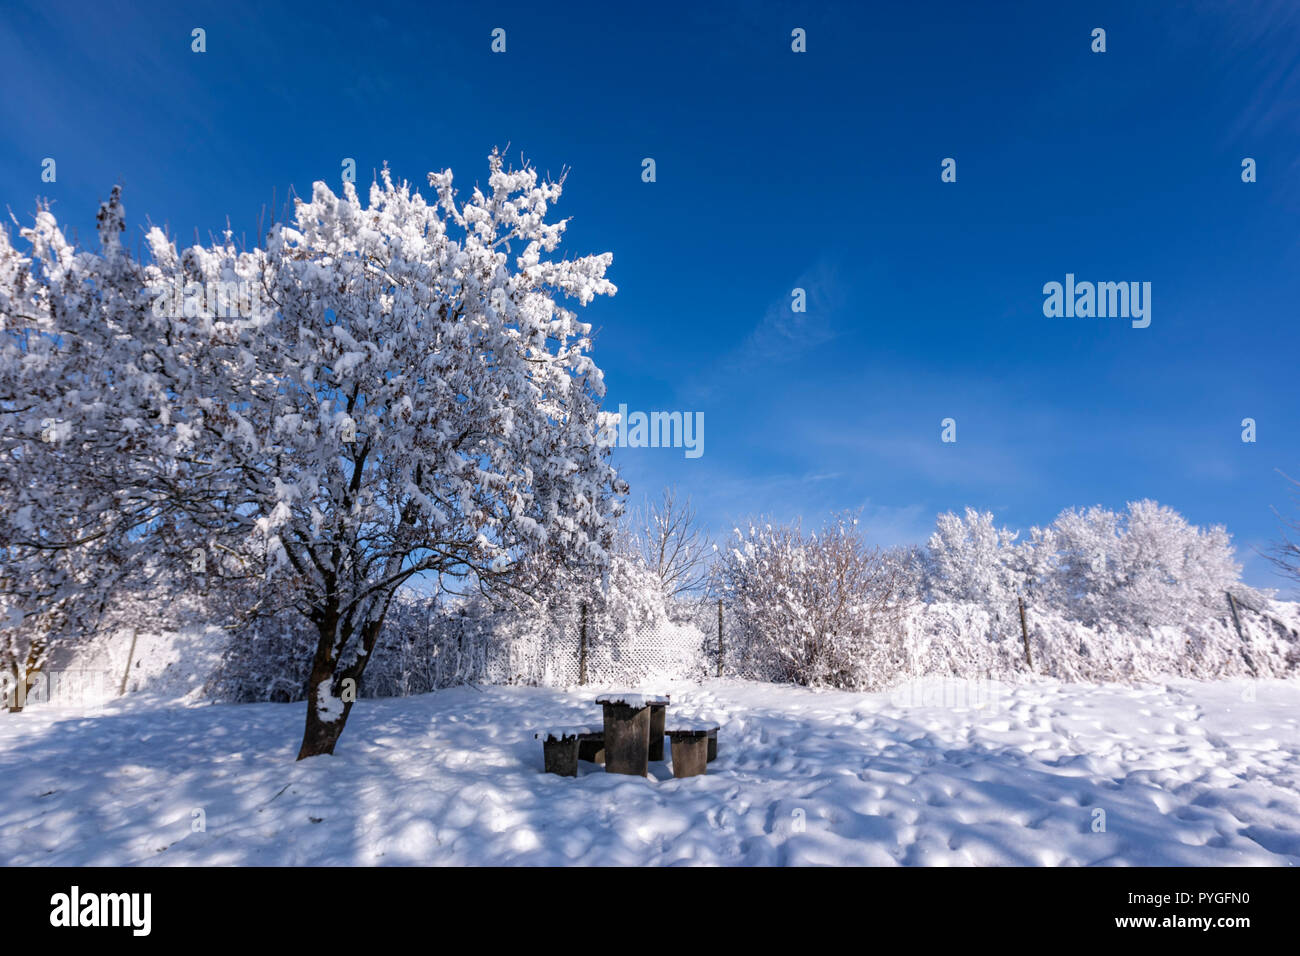 Winter with snow in a blue sky day in the A-8 Rest area rest pic nic area, Baden-Württemberg, Germany - Stock Image